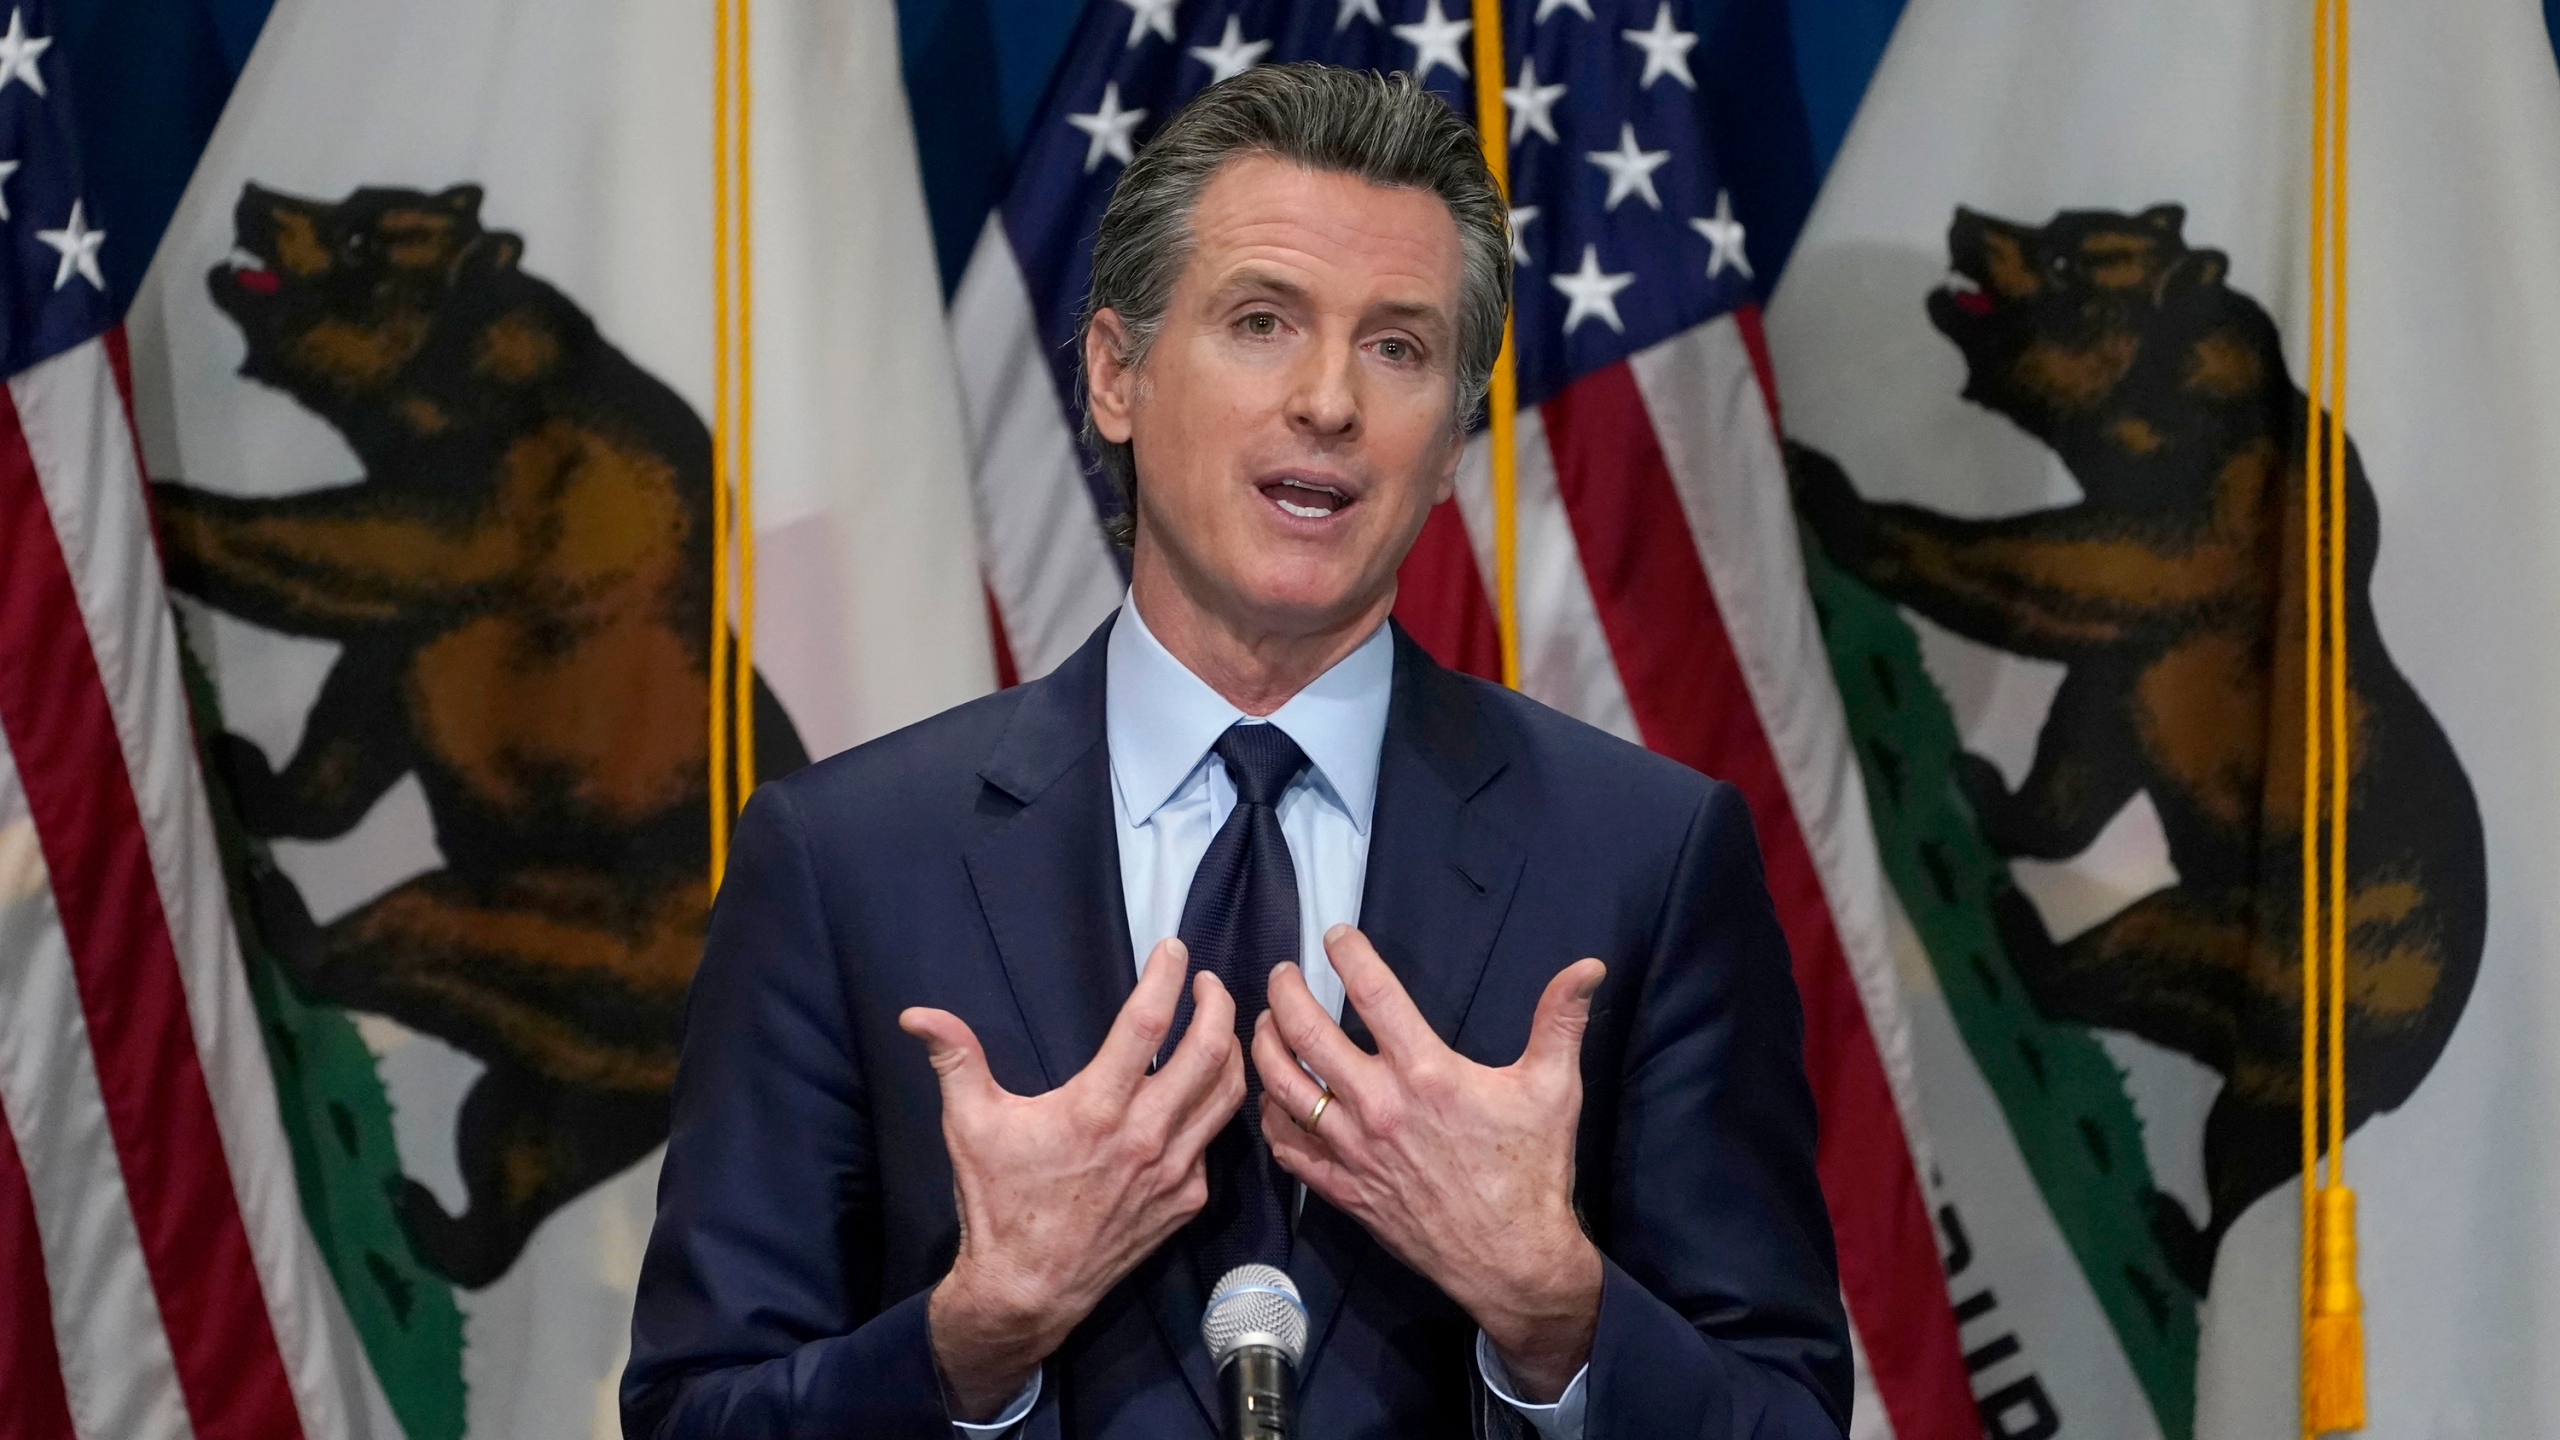 In this Jan. 8, 2021, file photo, California Gov. Gavin Newsom gestures during a news conference in Sacramento, Calif. California on Thursday, July 1, 2021 scheduled a Sept. 14 recall election that could drive Democratic Gov. Gavin Newsom from office, the result of a political uprising largely driven by angst over state coronavirus orders that shuttered schools and businesses and upended life for millions of Californians. (AP Photo/Rich Pedroncelli, Pool, File)